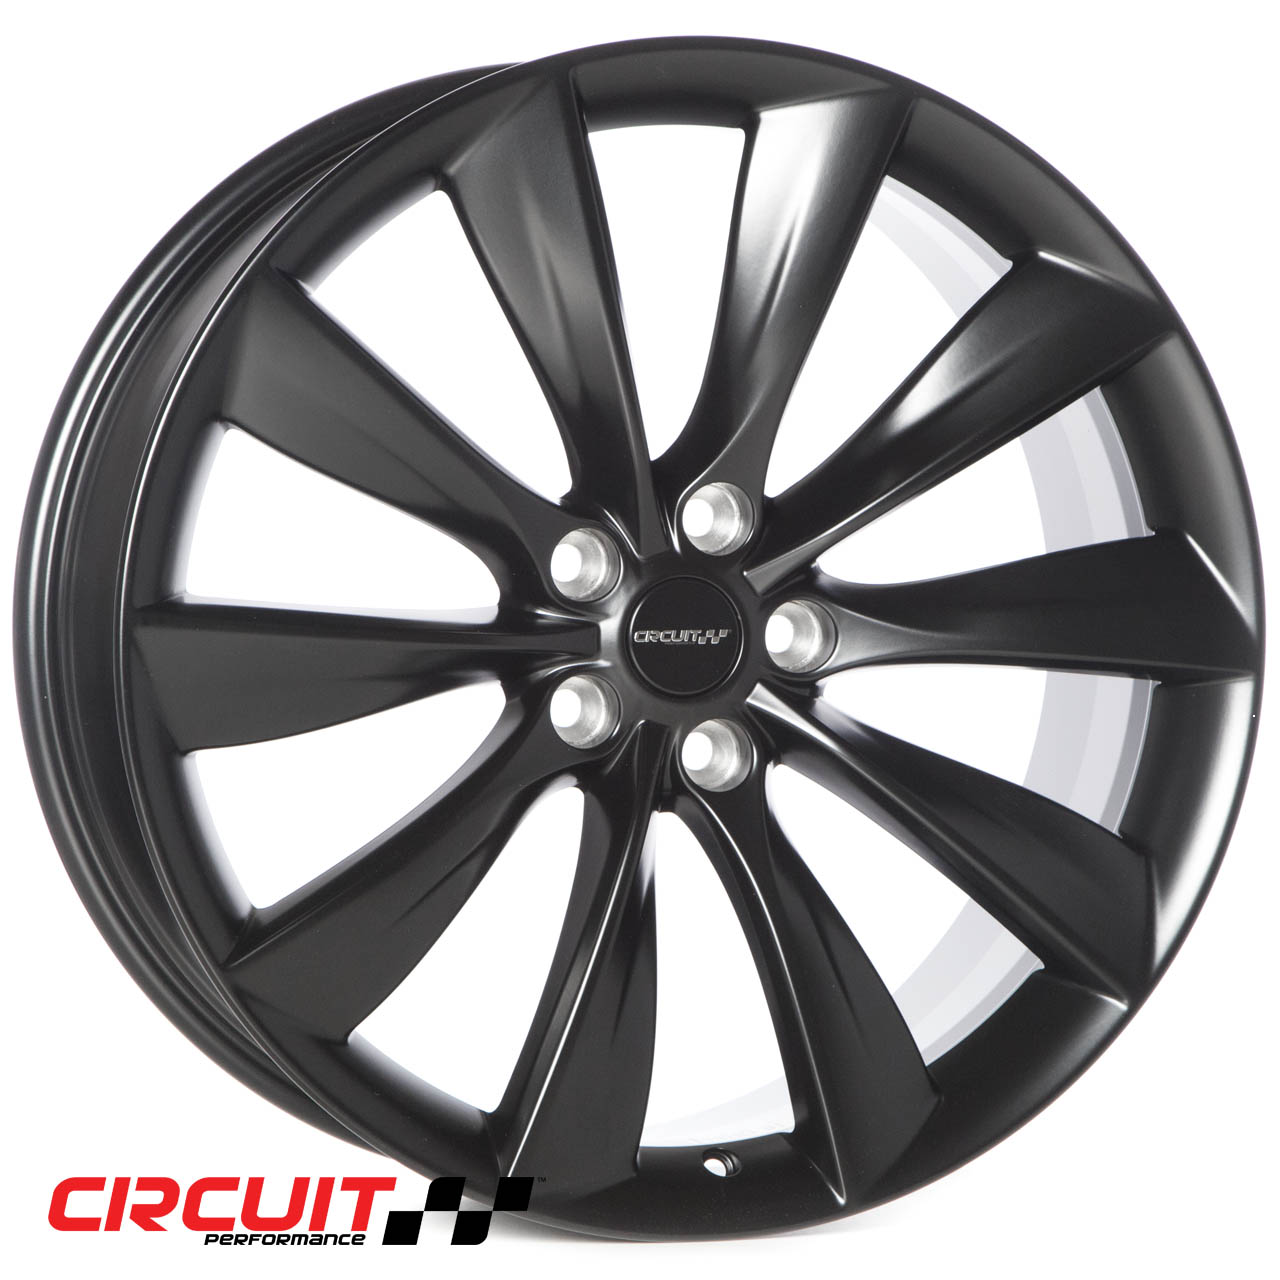 CP12 21x8.5 Flat Black 5x120 et40 Wheel - Circuit Performance